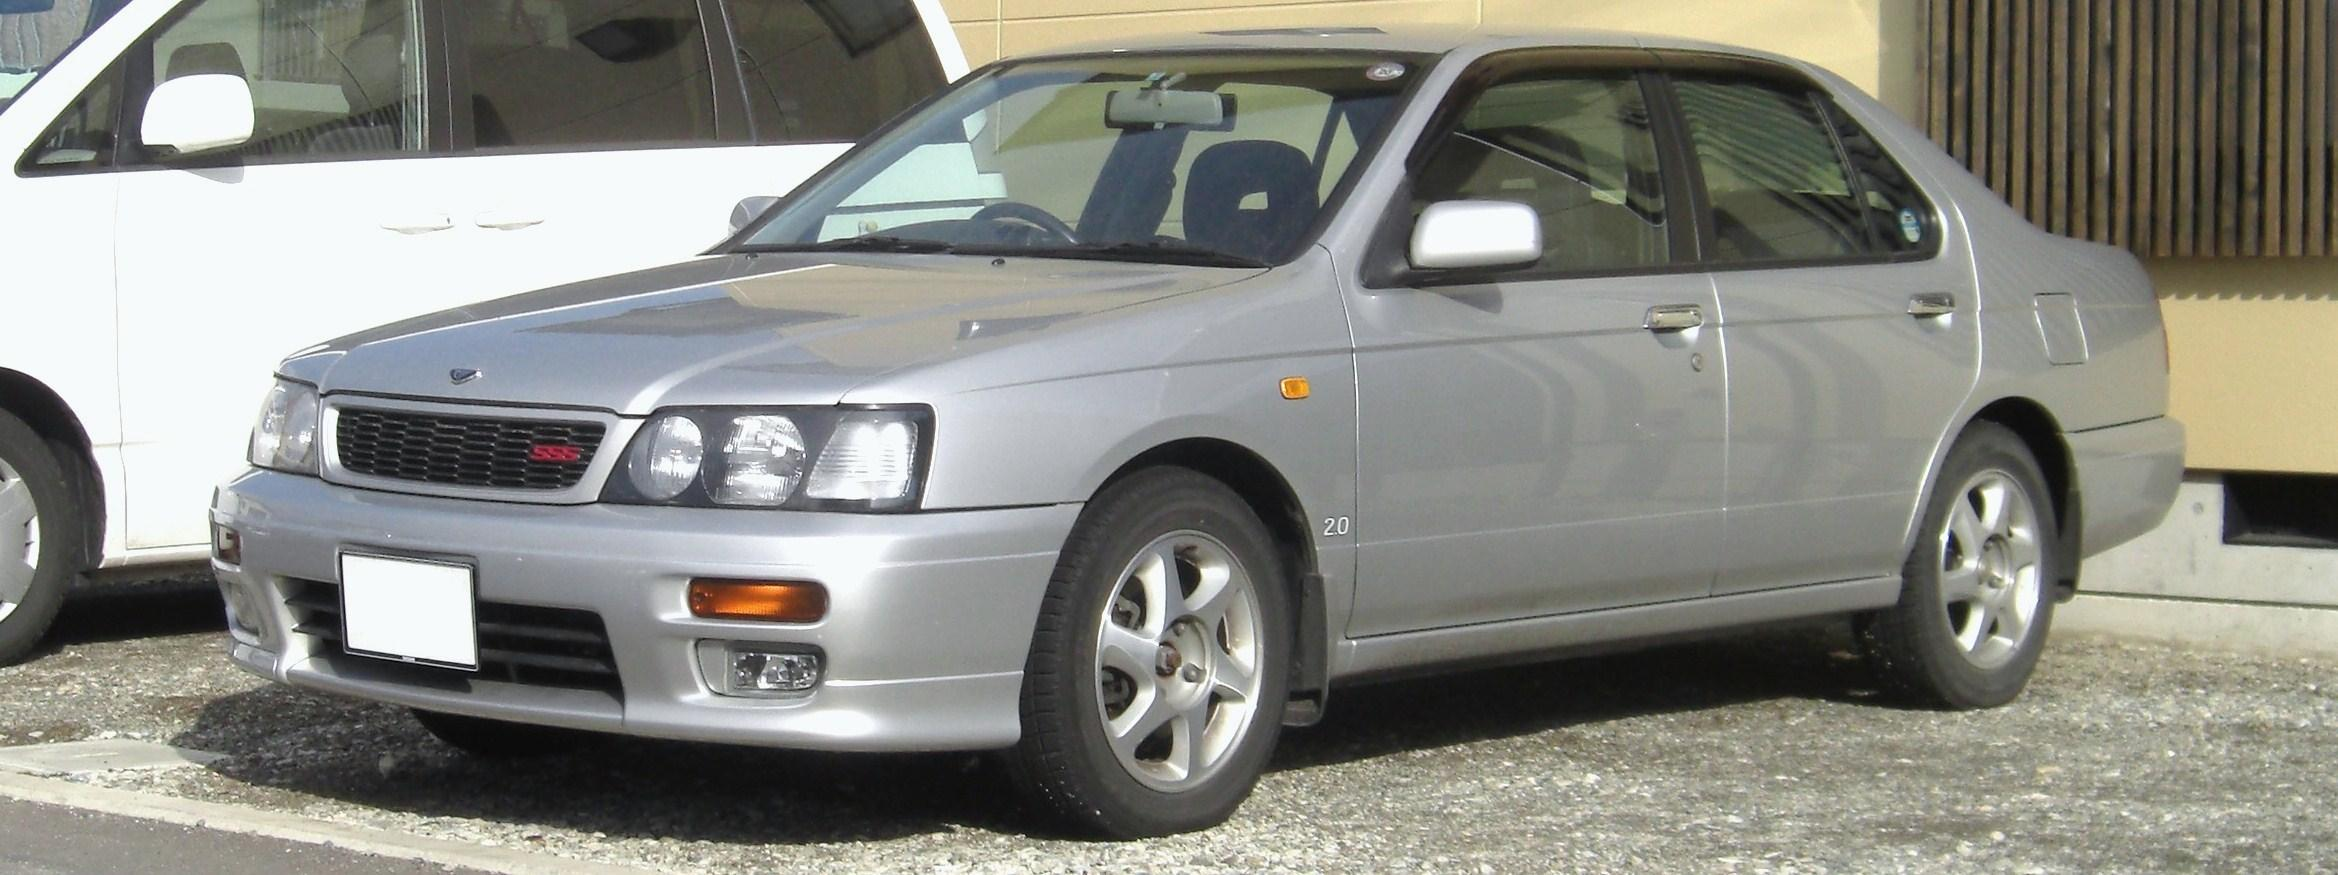 Nissan bluebird photo - 4